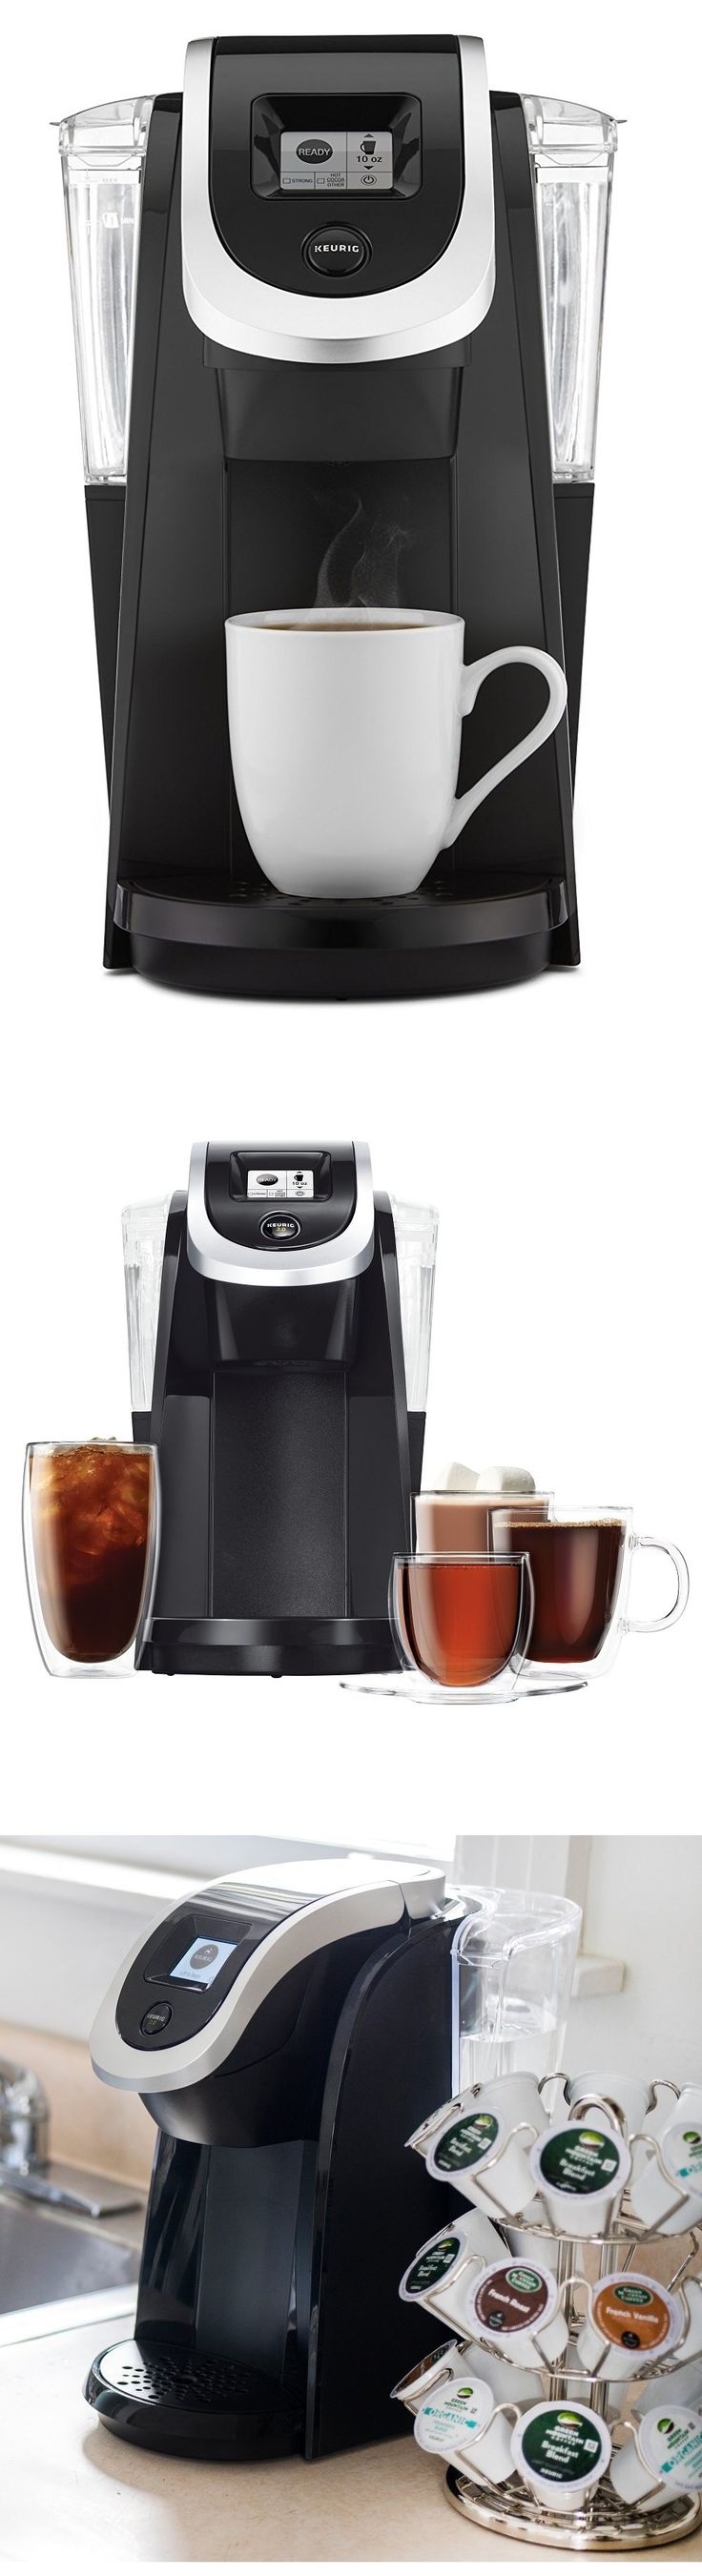 programmable-k-cup-pod-coffee-maker-with-strength-control